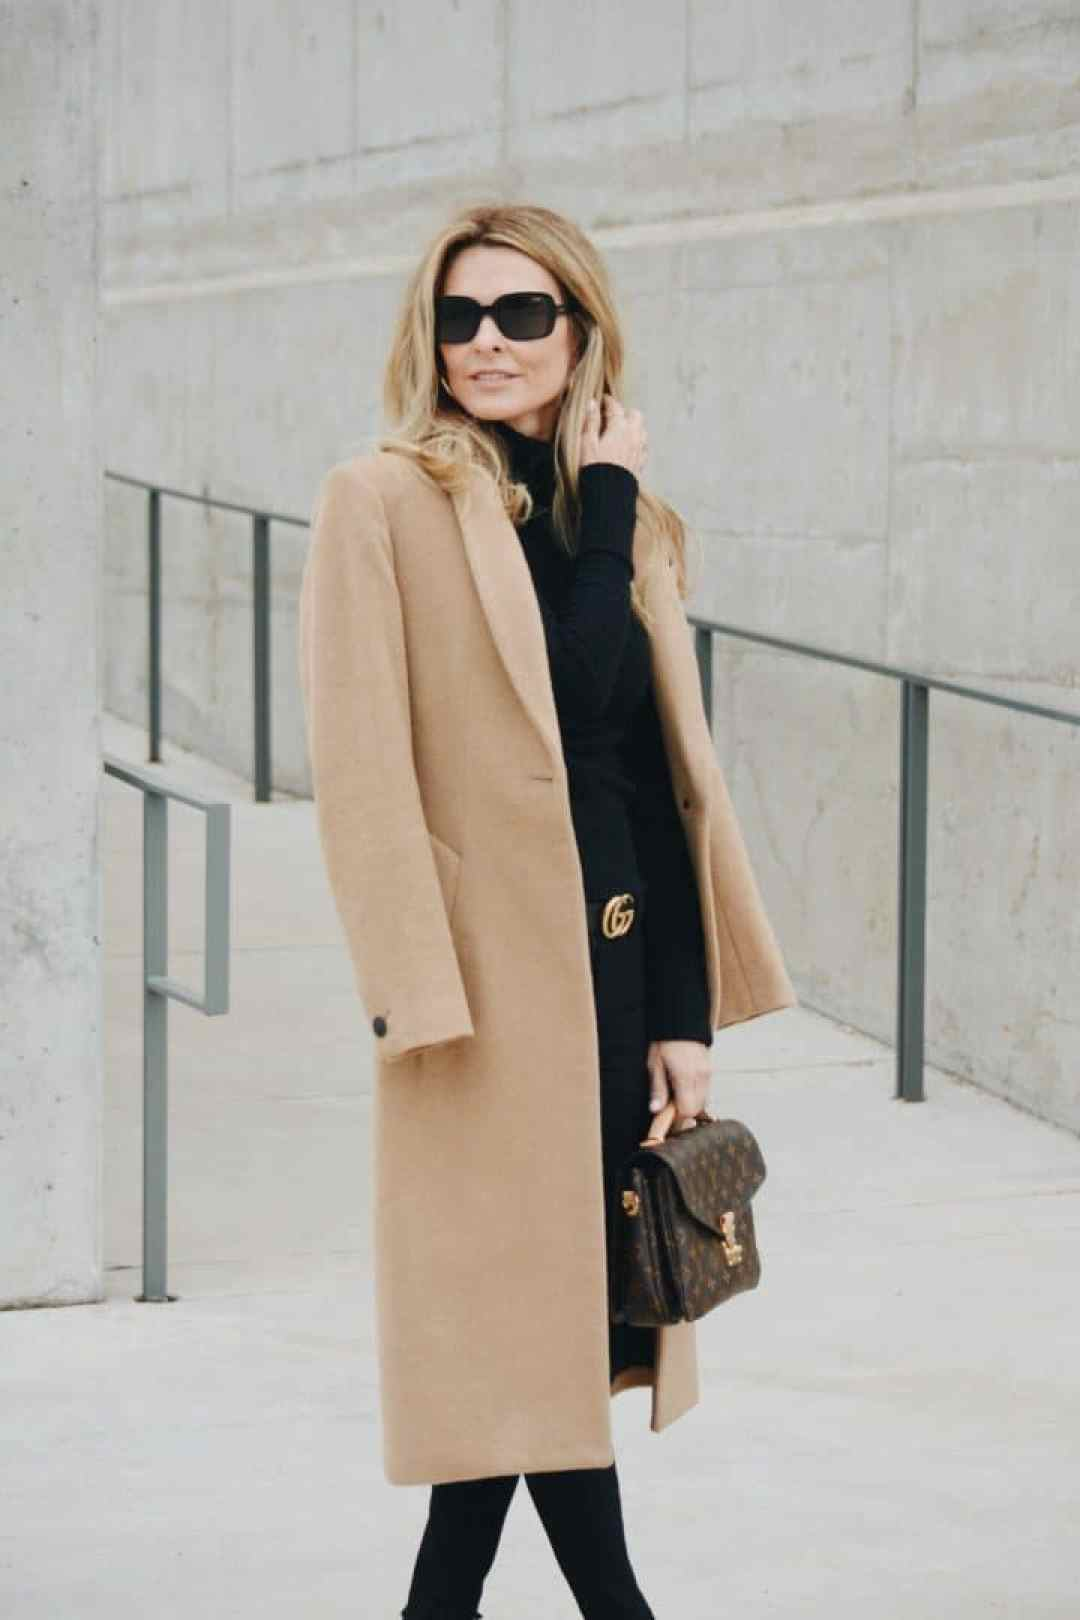 Rag & Bone Camel Coat, Gucci Belt, Louis Vuitton Bag - Style by Her Fashioned Life